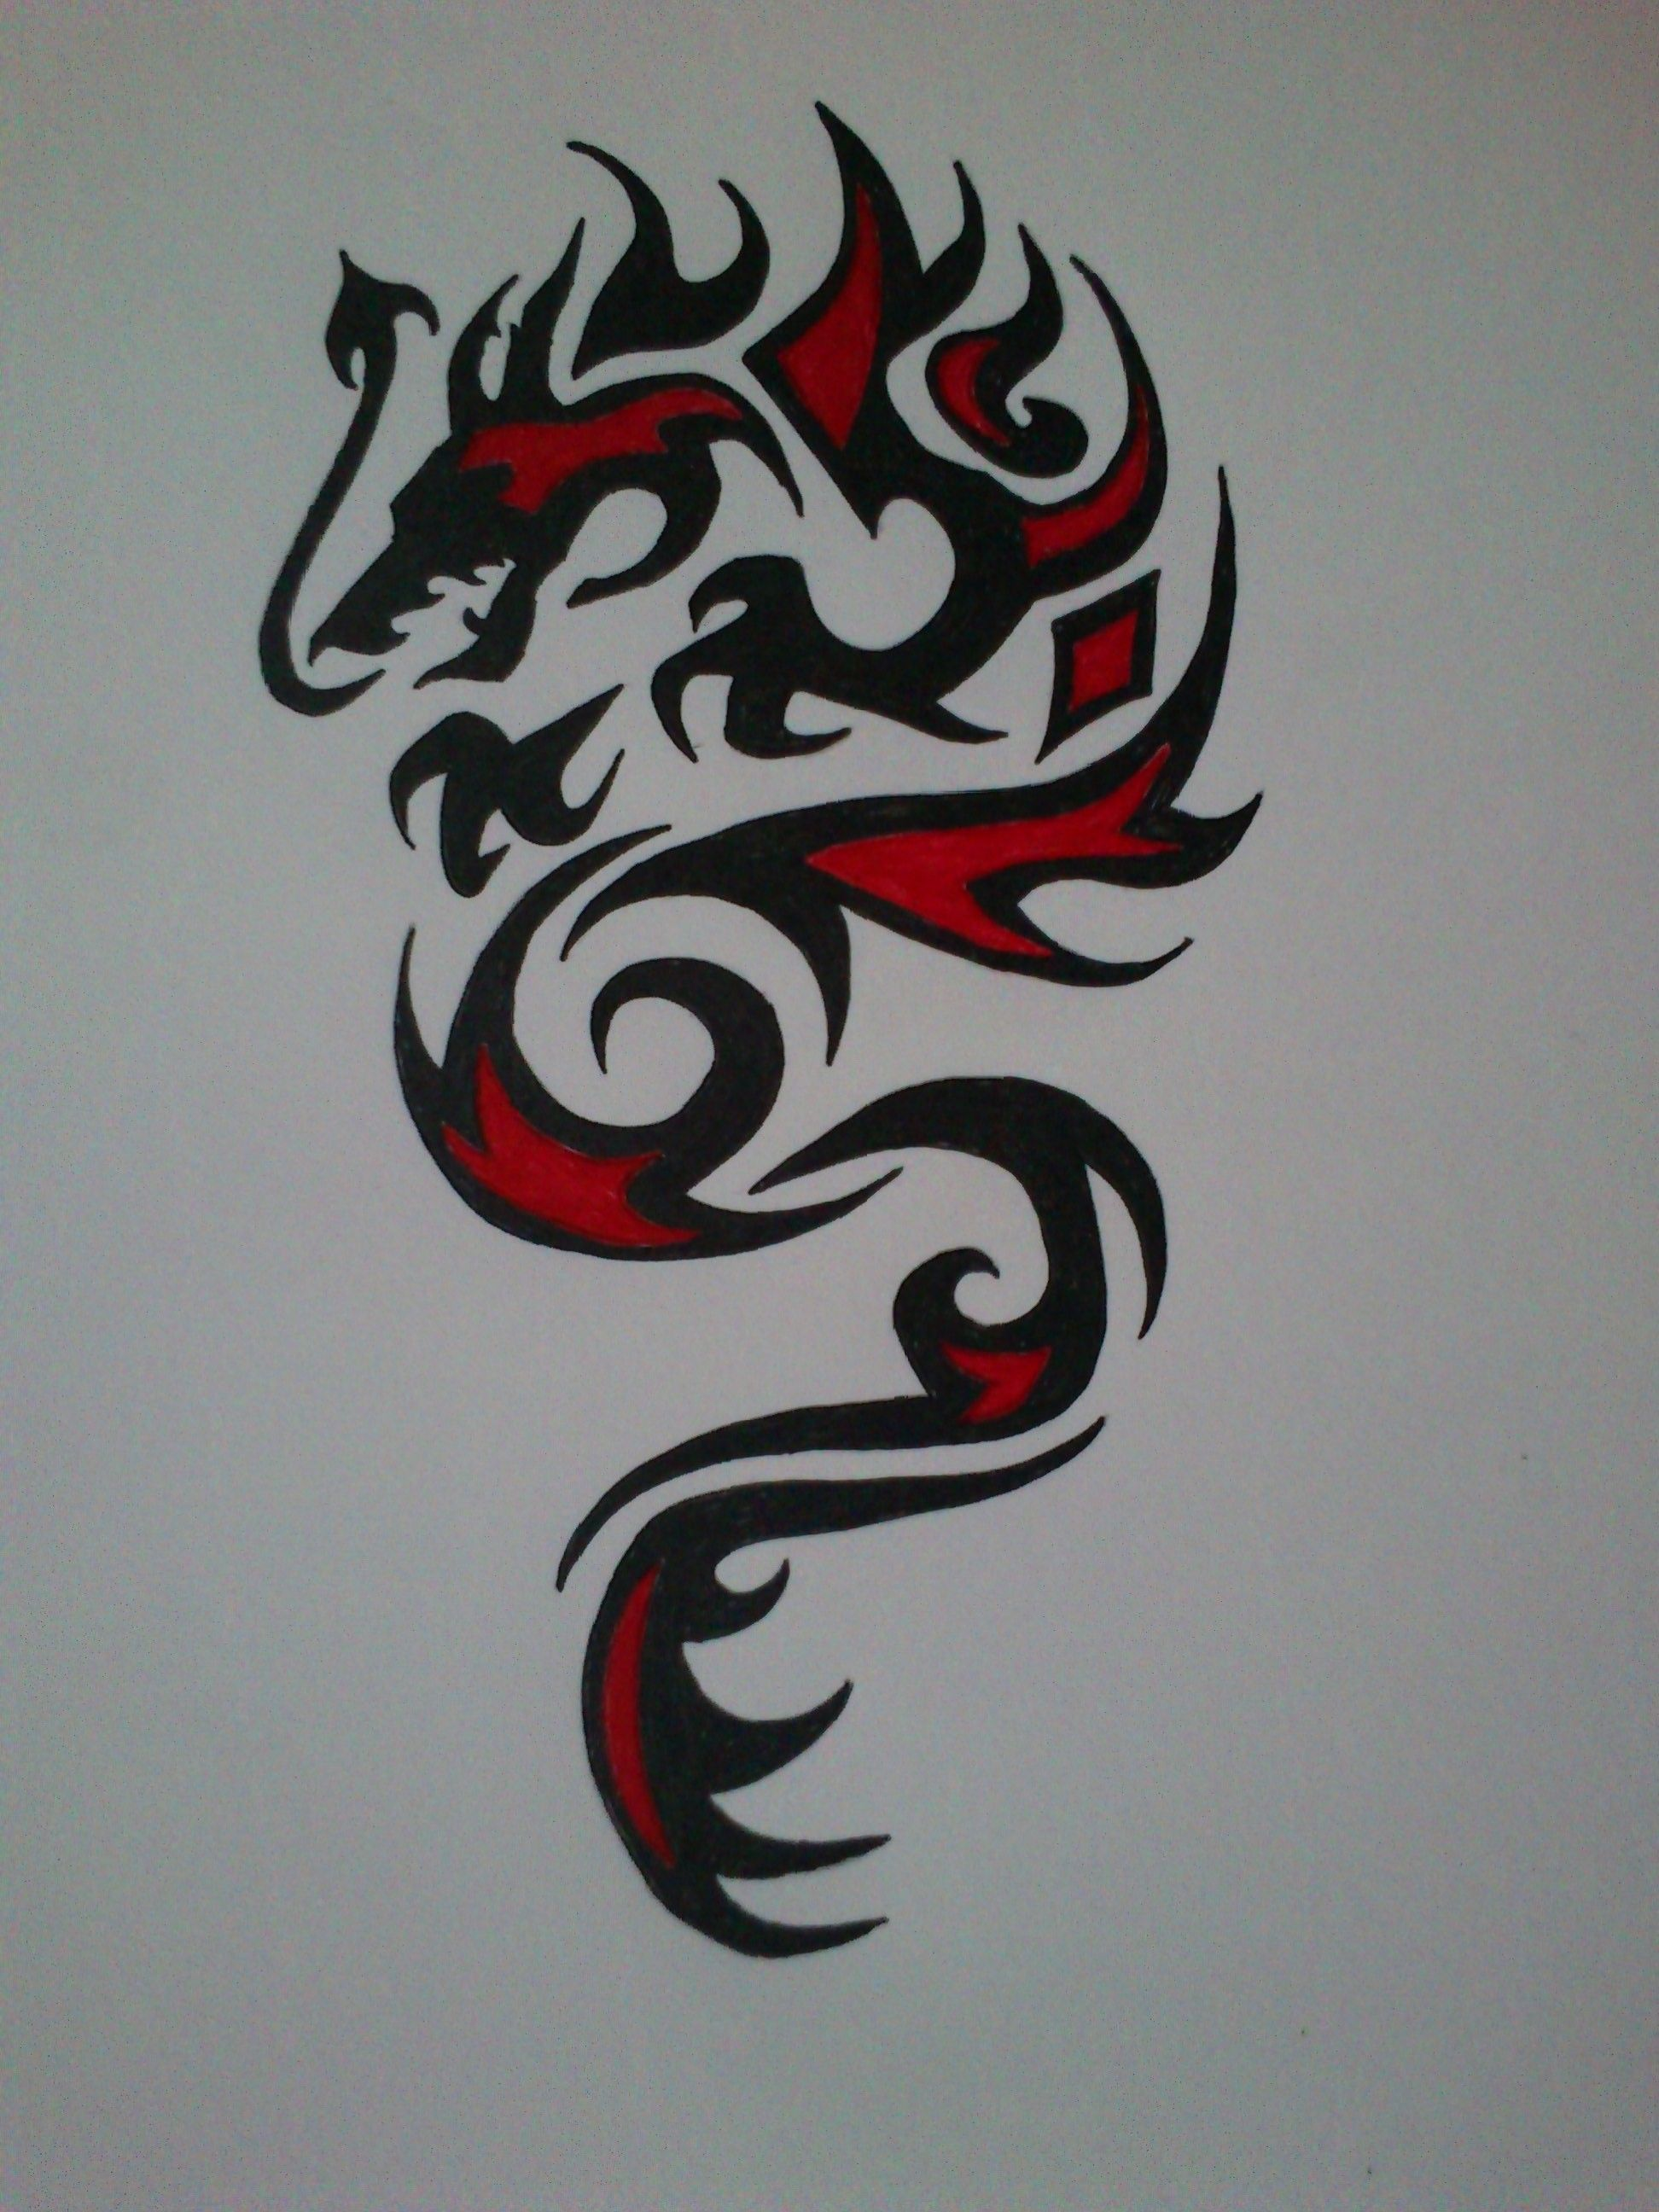 Black Dragon Tattoo On Neck Dragon Tattoos Neck Tattoo For Guys Tattoos For Guys Neck Tattoo